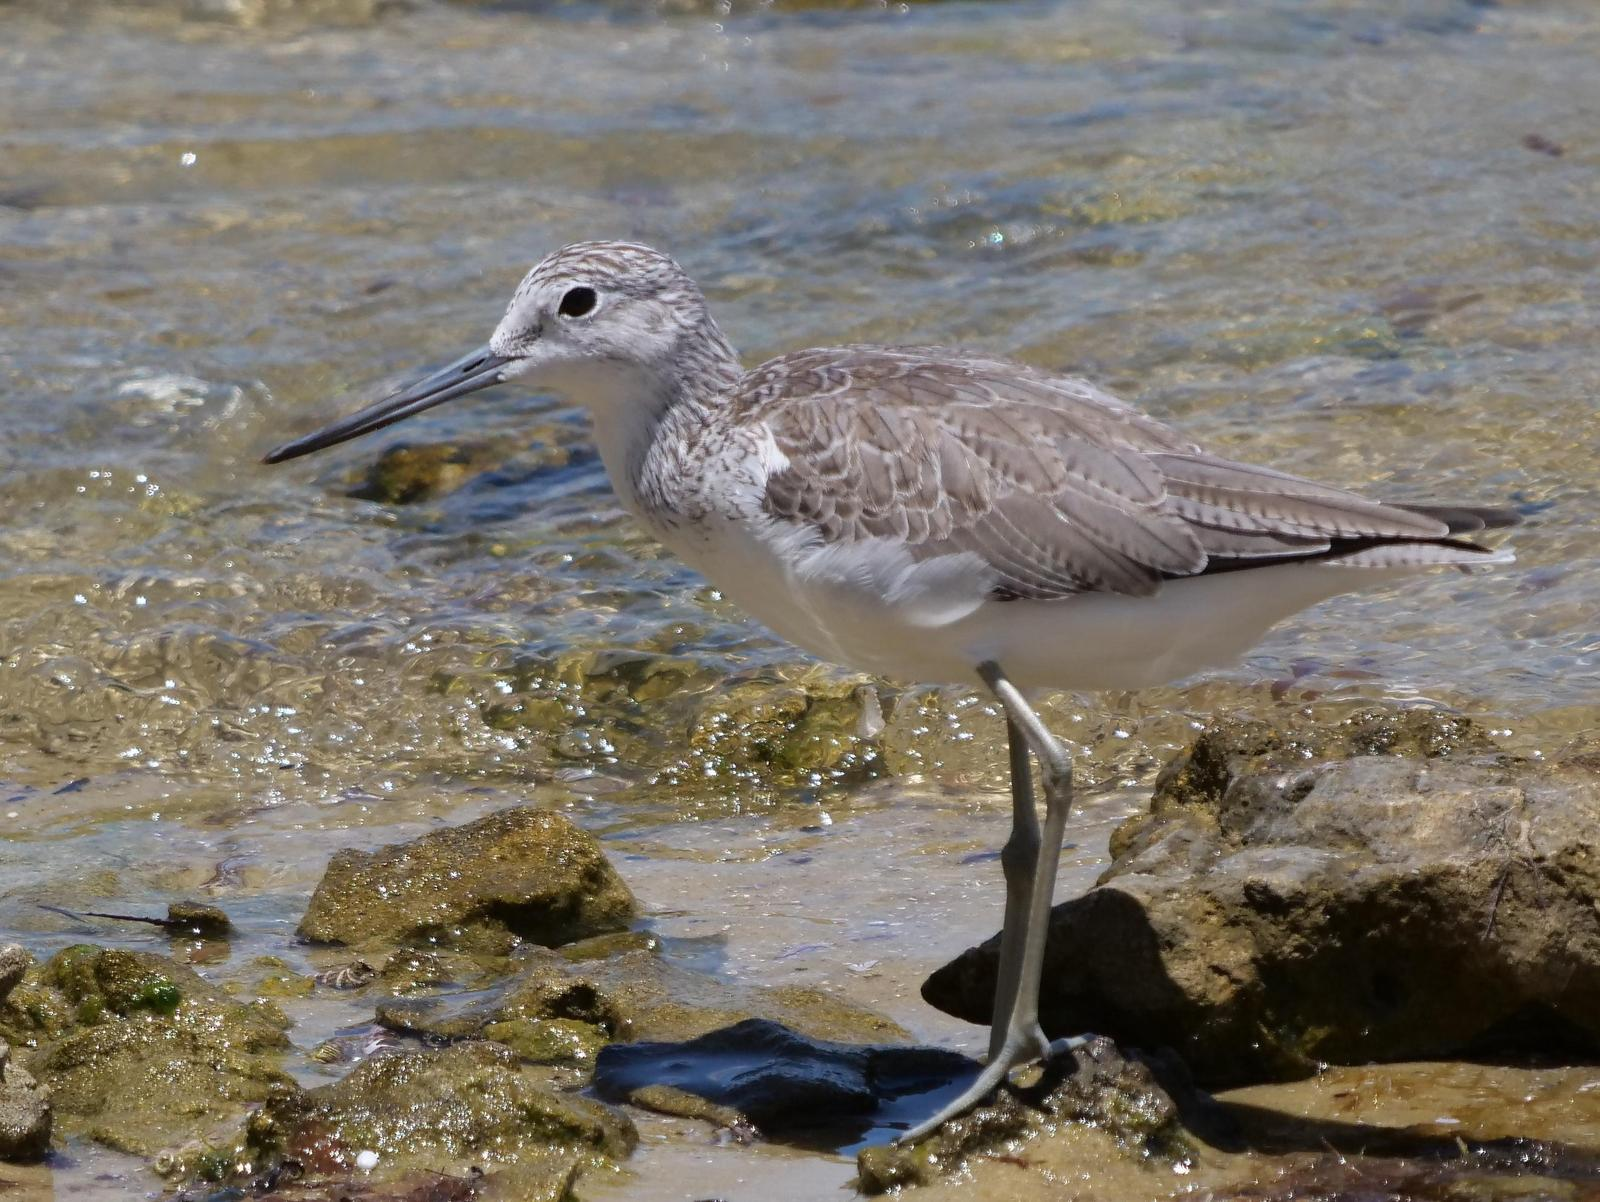 Common Greenshank Photo by Peter Lowe